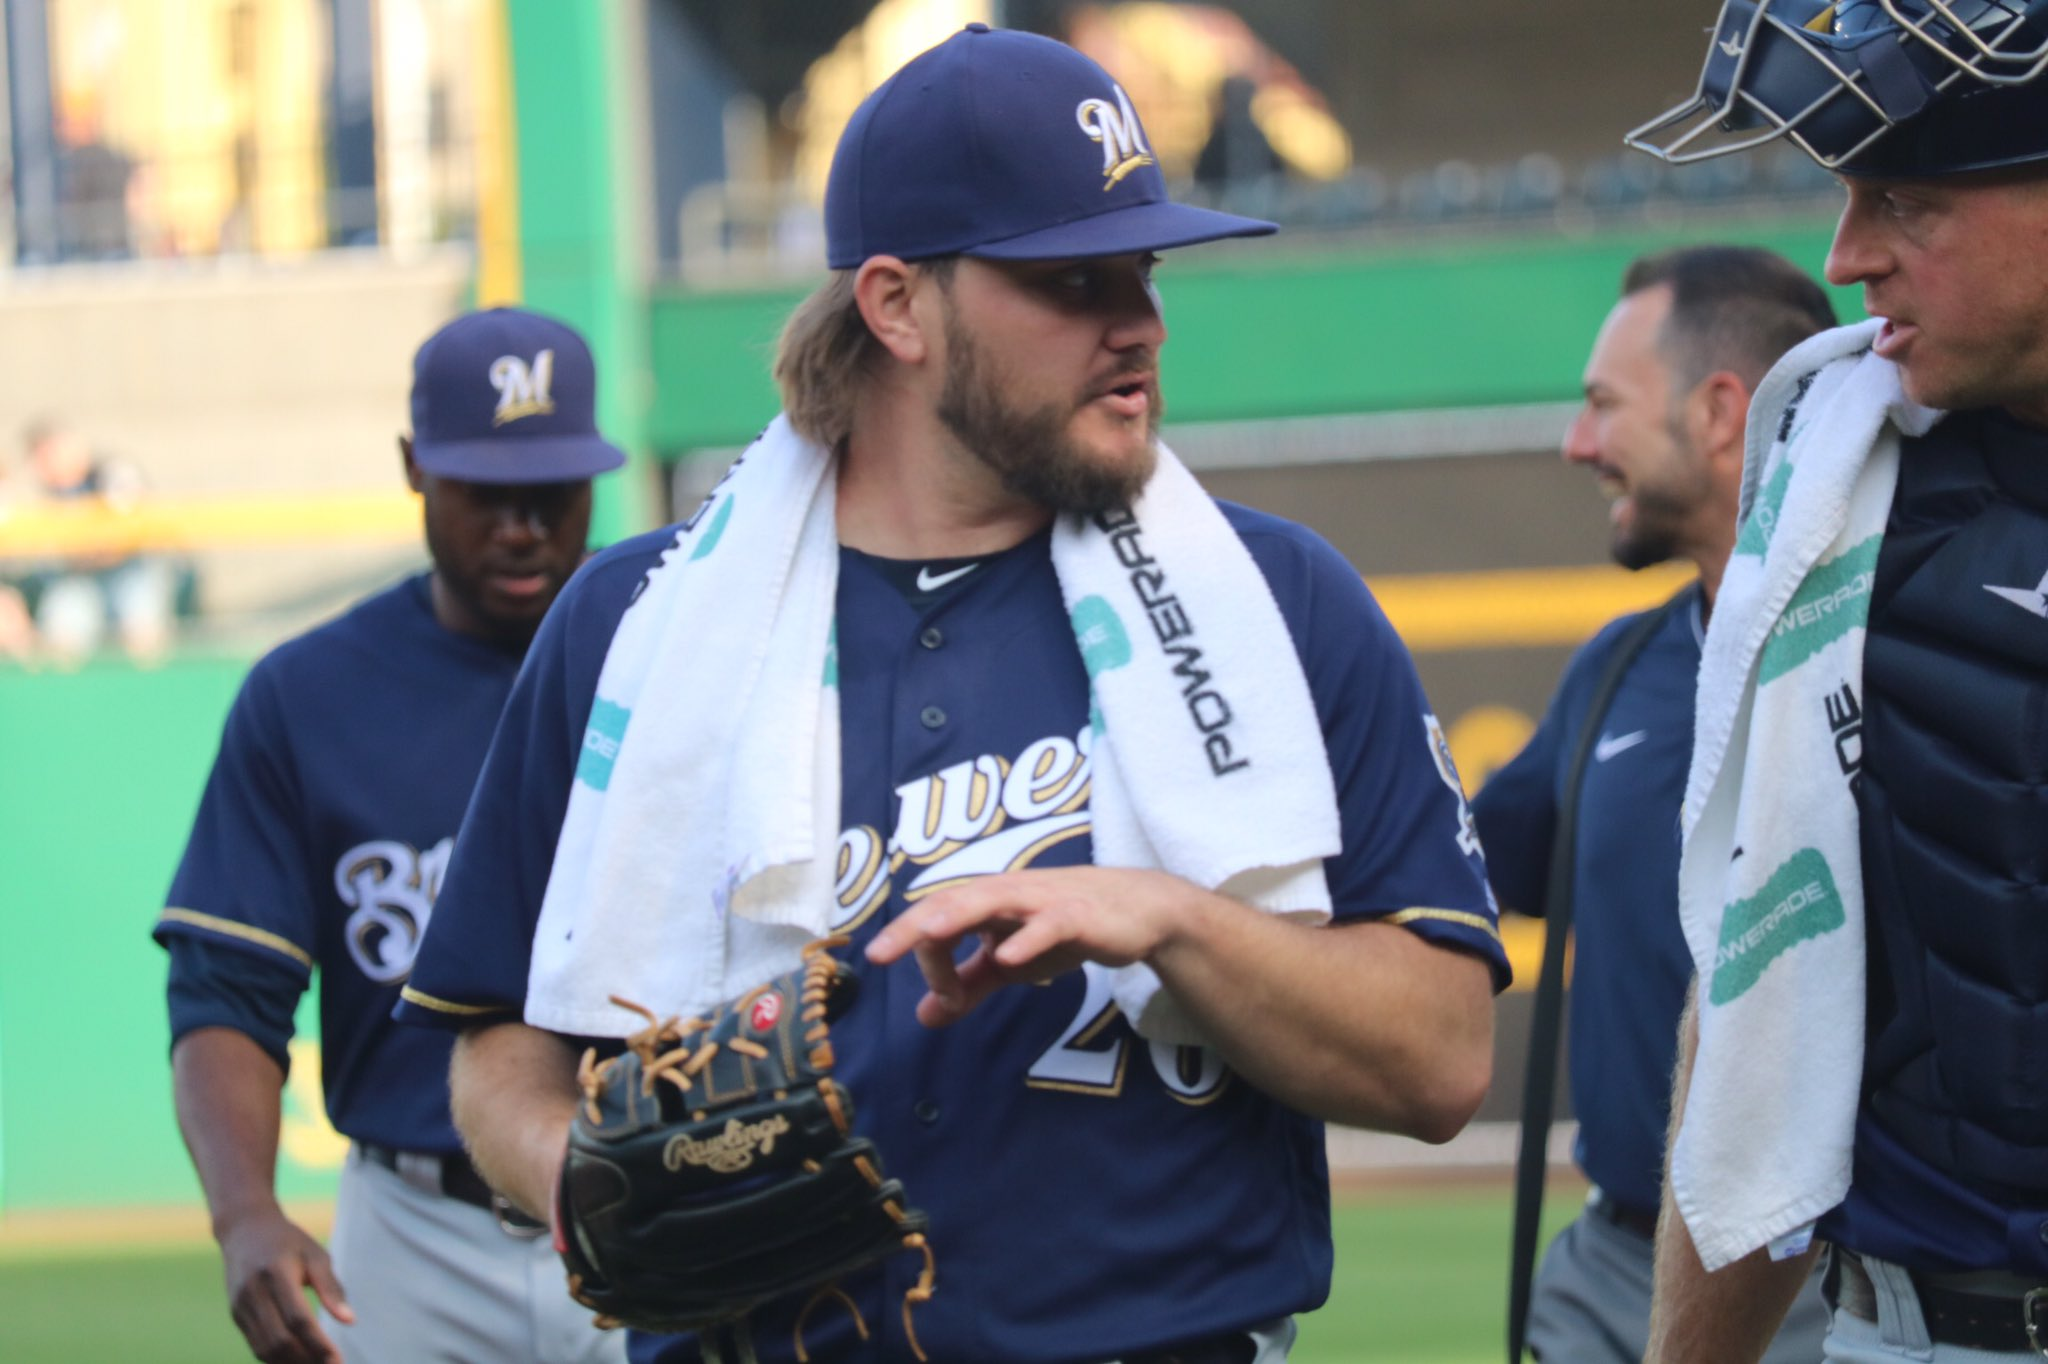 Wade Miley is ready to #PlayBall in his return from the disabled list! #ThisIsMyCrew https://t.co/b4d3LdJ3ih